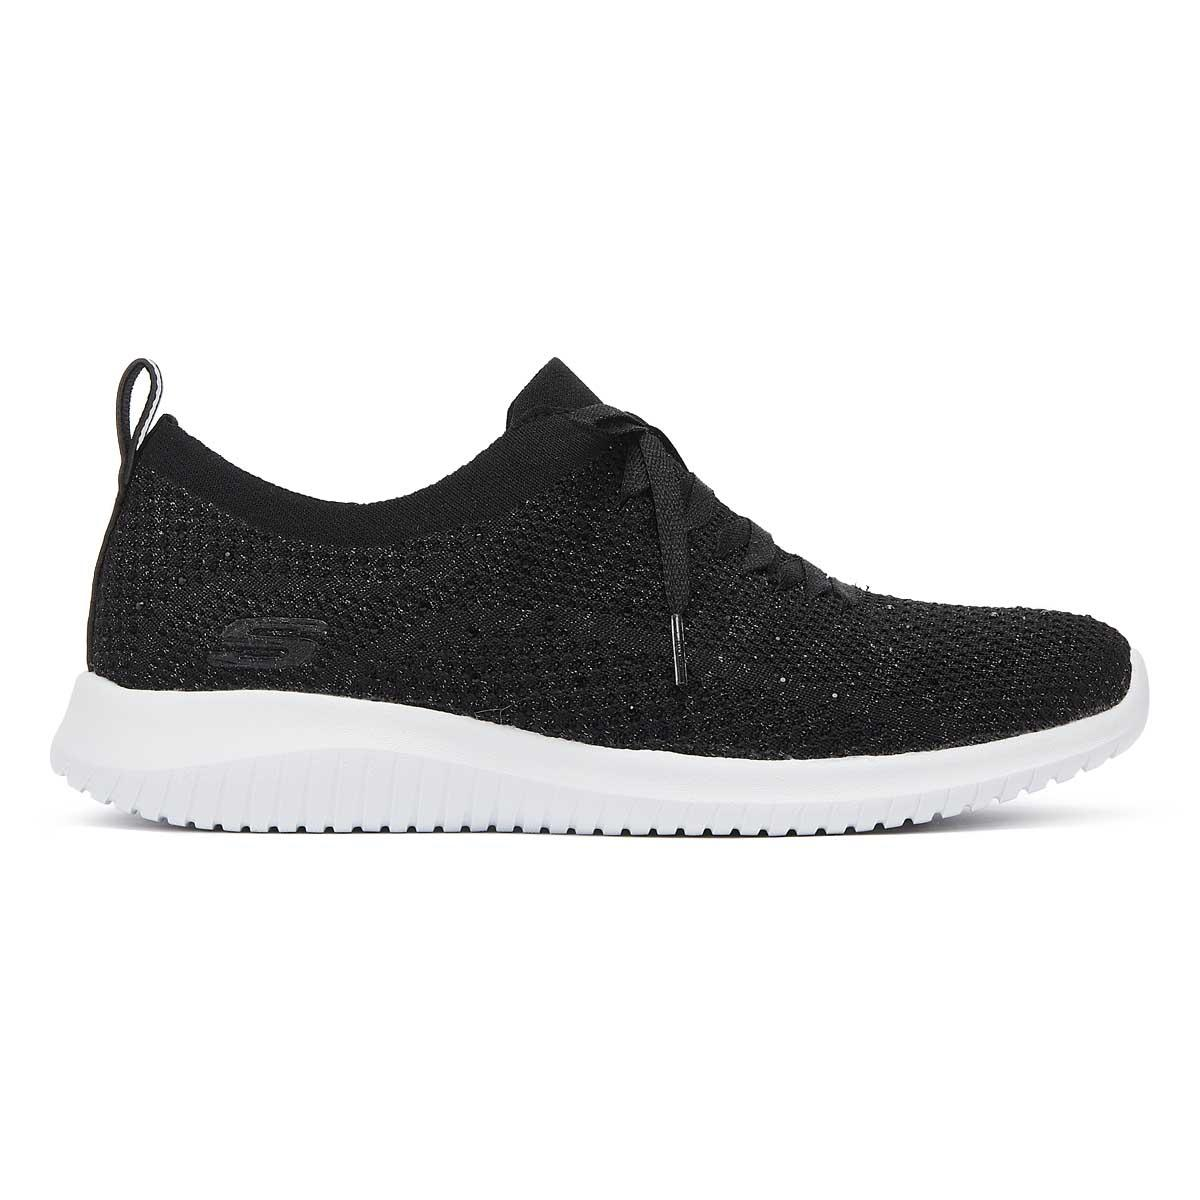 51a64b5e6cb4 Skechers - Ultra Flex Strolling Out Womens Black Trainers - Lyst. View  fullscreen